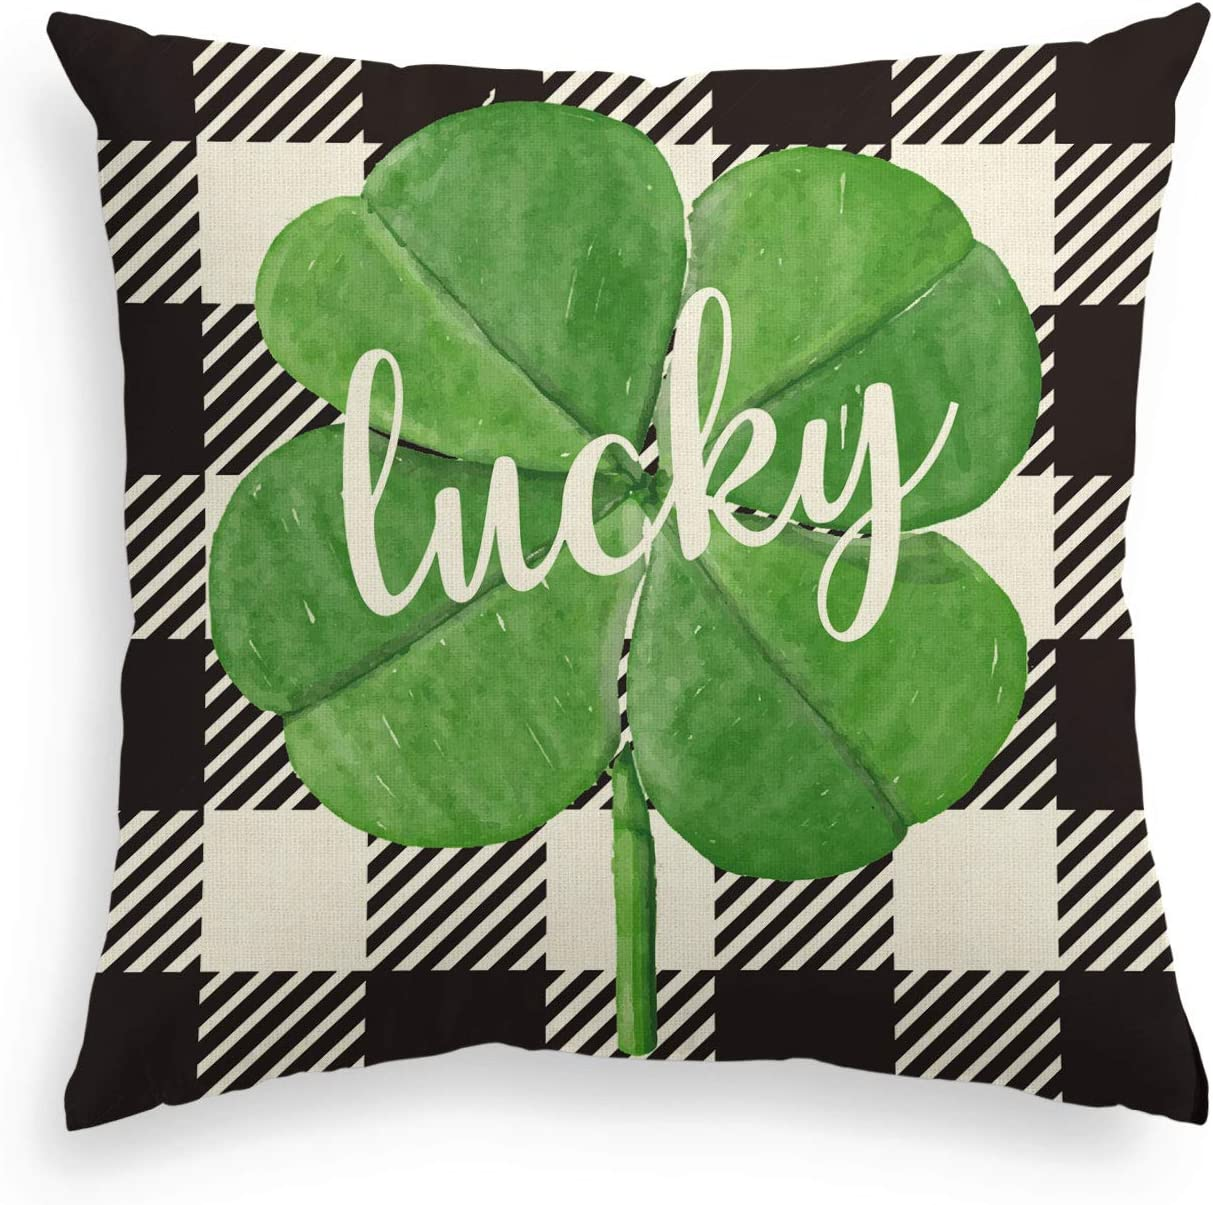 AVOIN Black and White Buffalo Plaid Shamrock Throw Pillow Cover, 18 x 18 Inch St Patrick's Day Lucky Clover Cushion Case Decoration for Sofa Couch